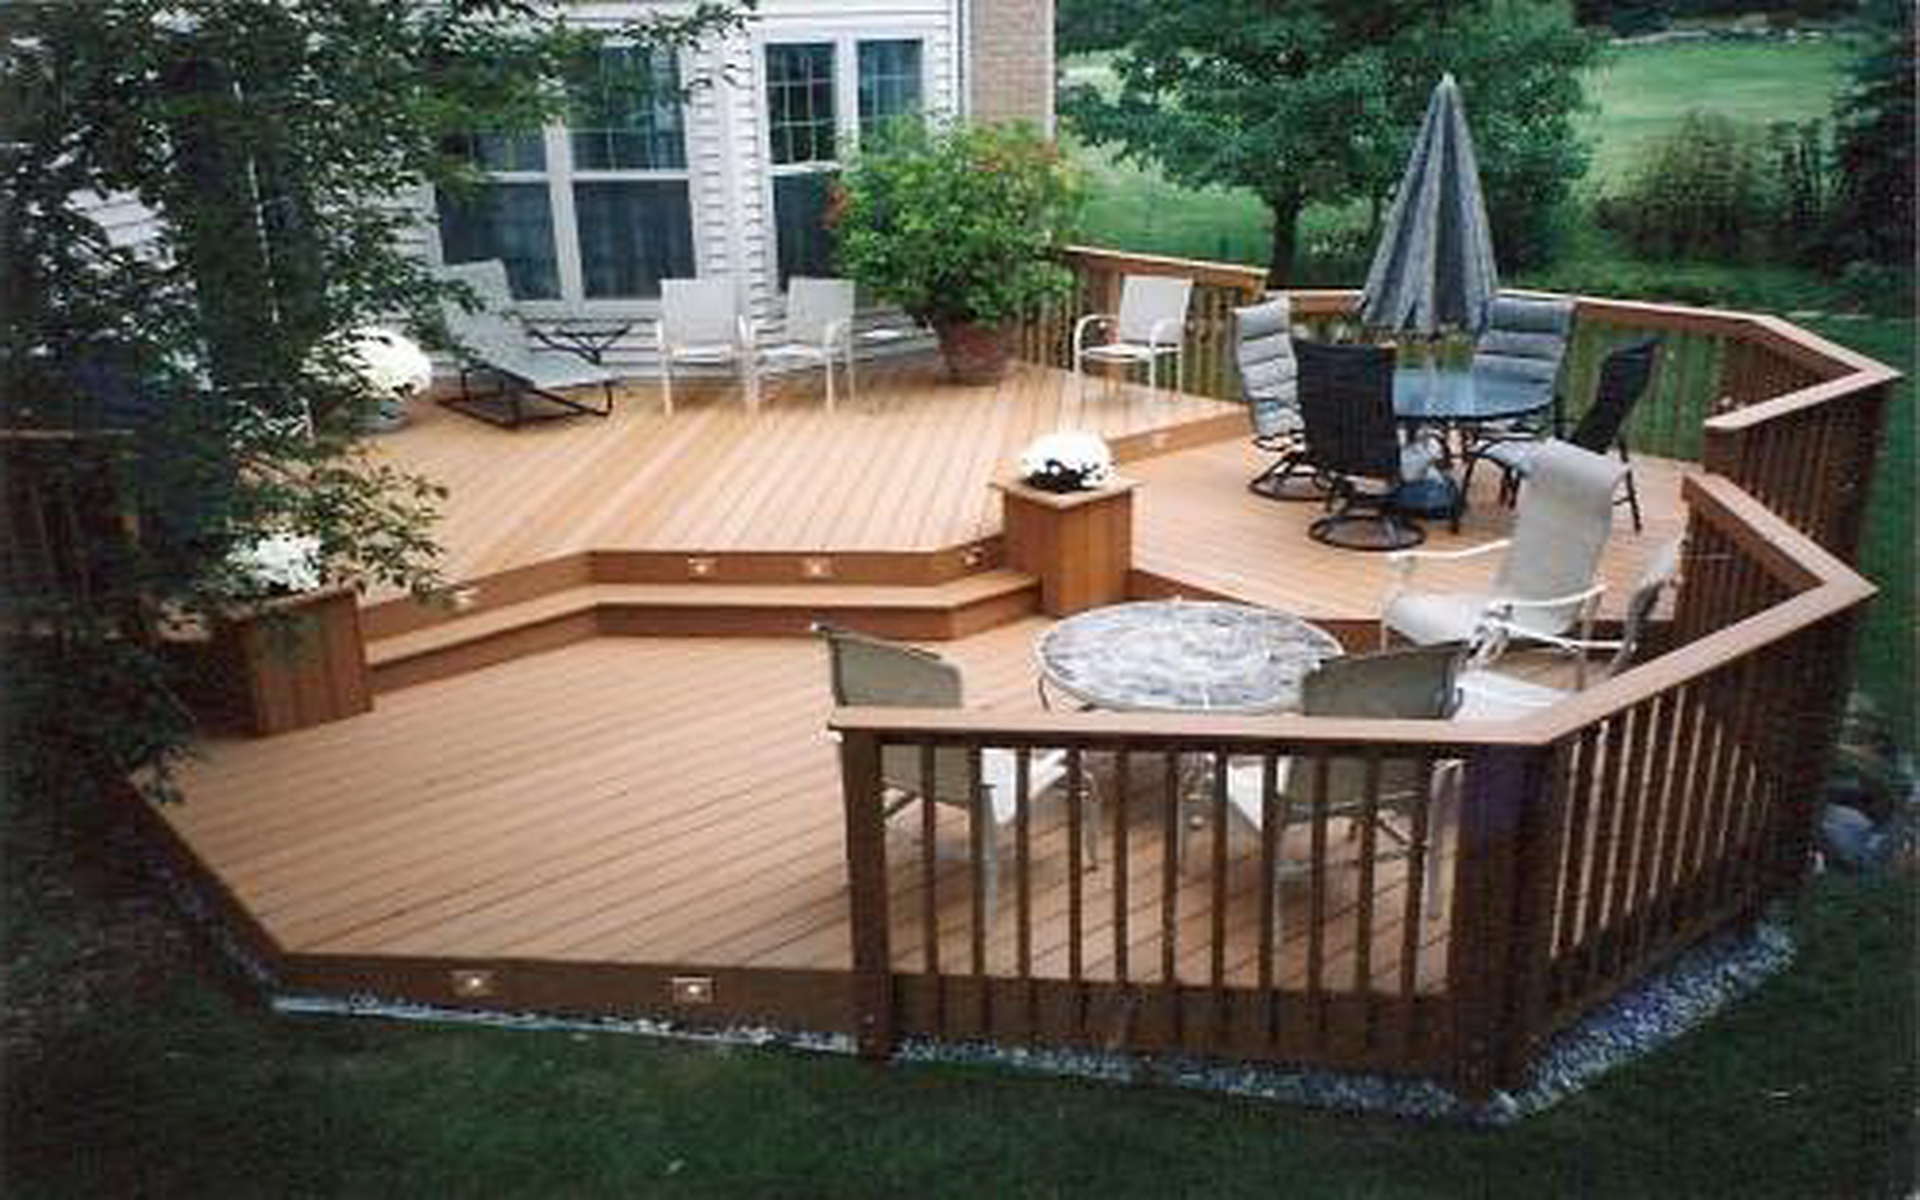 28 truly awesome wooden deck designs for your home Wood deck designs free